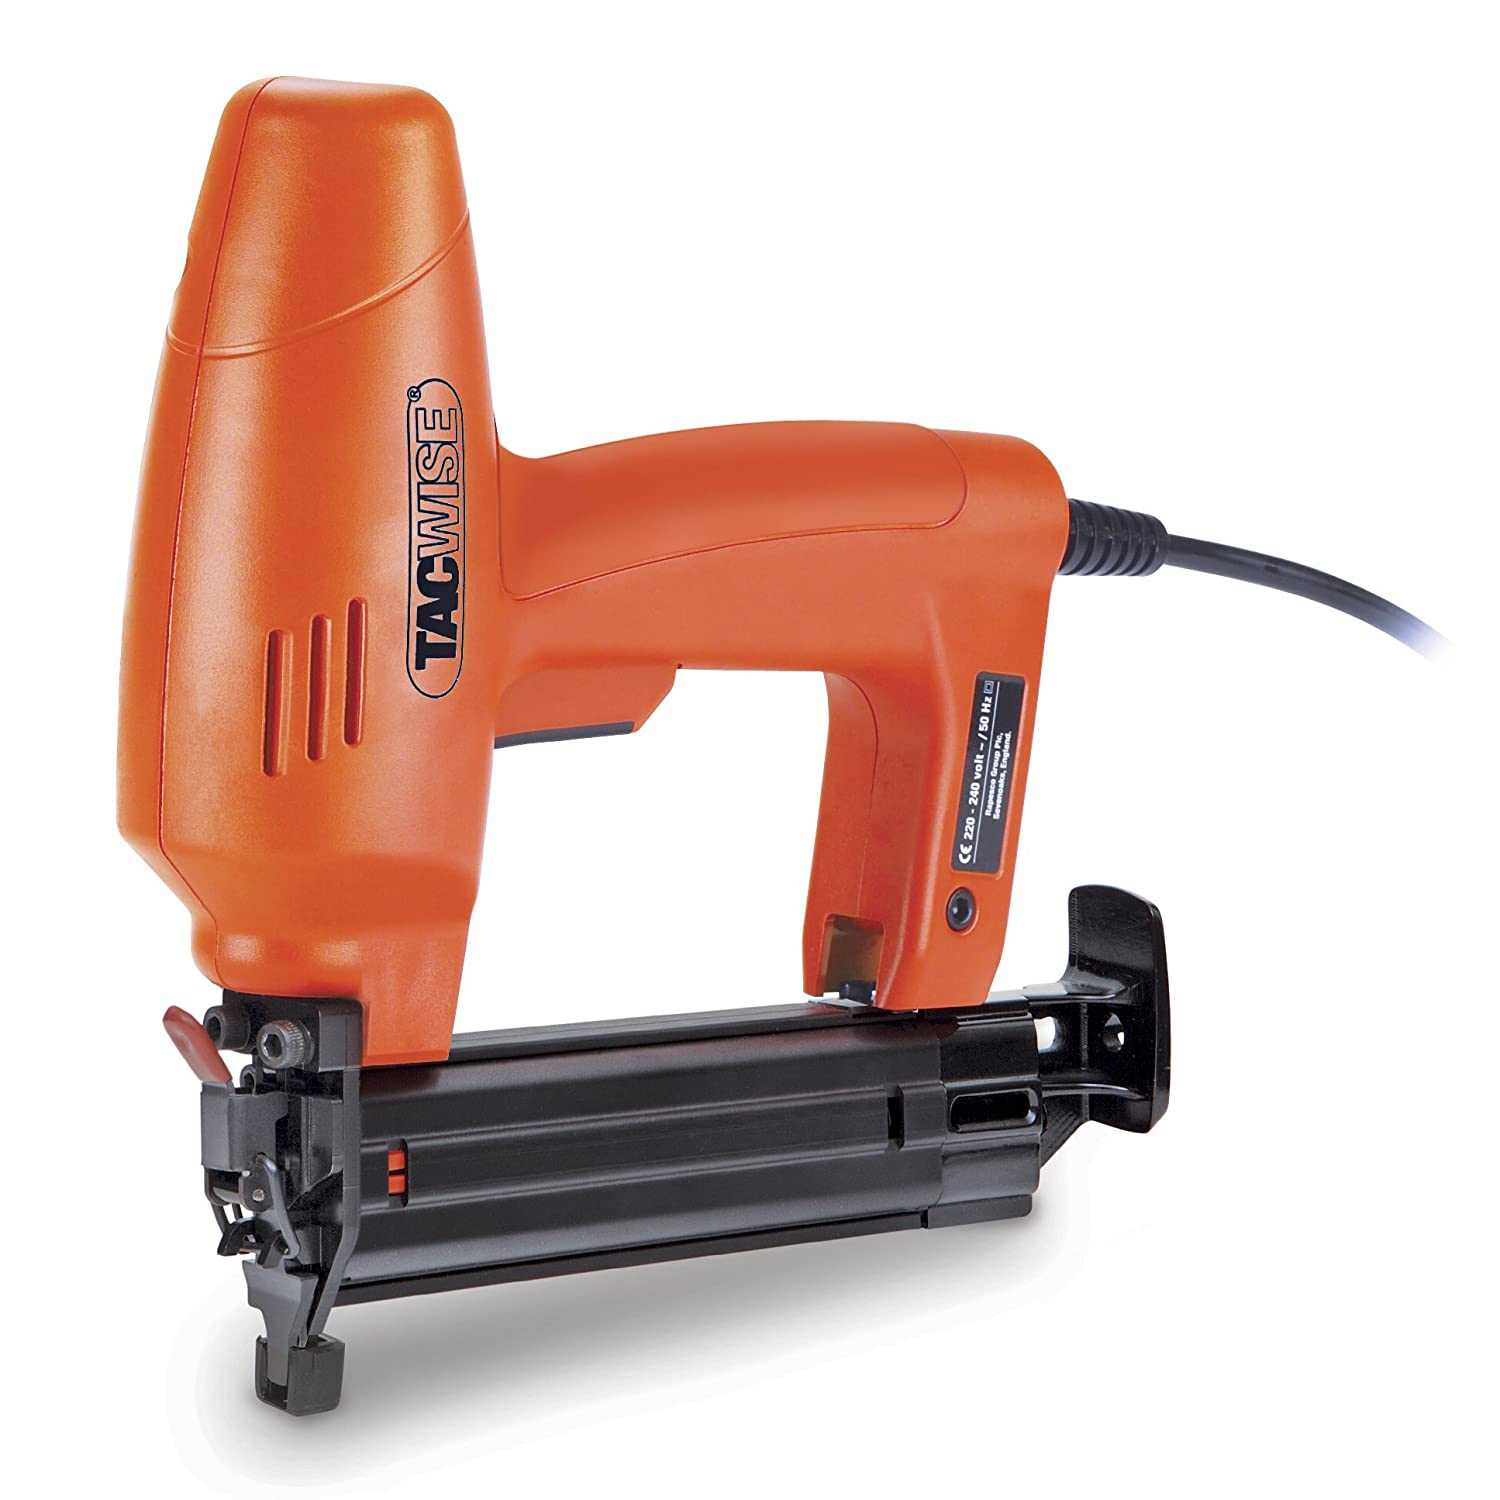 List of Synonyms and Antonyms of the Word: nail gun